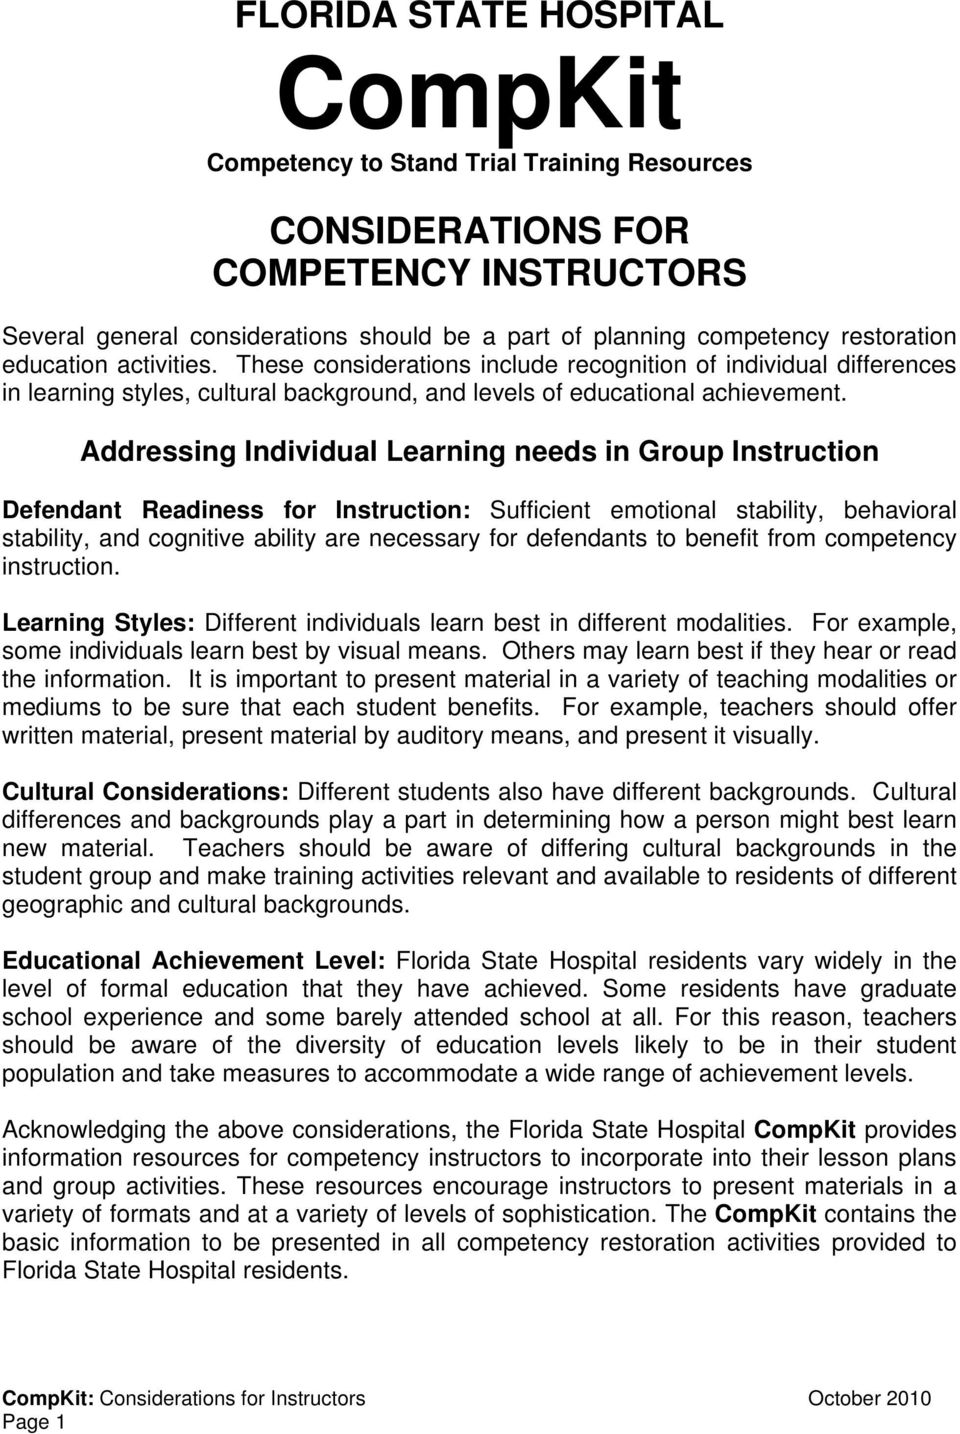 Addressing Individual Learning needs in Group Instruction Defendant Readiness for Instruction: Sufficient emotional stability, behavioral stability, and cognitive ability are necessary for defendants